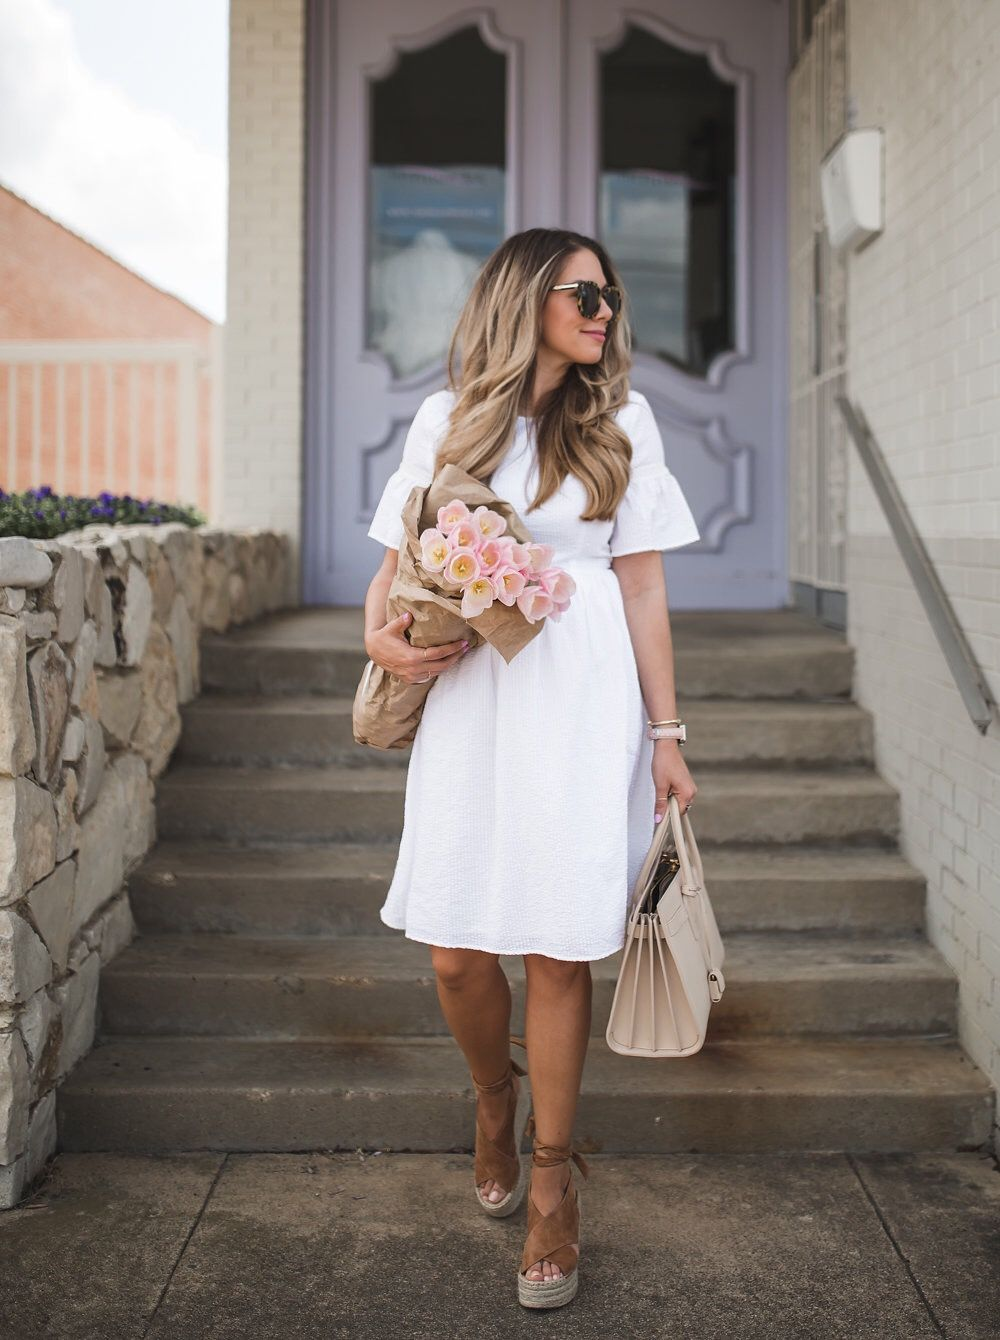 5 White Dresses For The Bride To Be The Teacher Diva A Dallas Fashion Blog Featuring Beauty Lifestyle Rehearsal Dinner Outfits Wedding Shower Dress Wedding Shower Outfit [ 1340 x 1000 Pixel ]